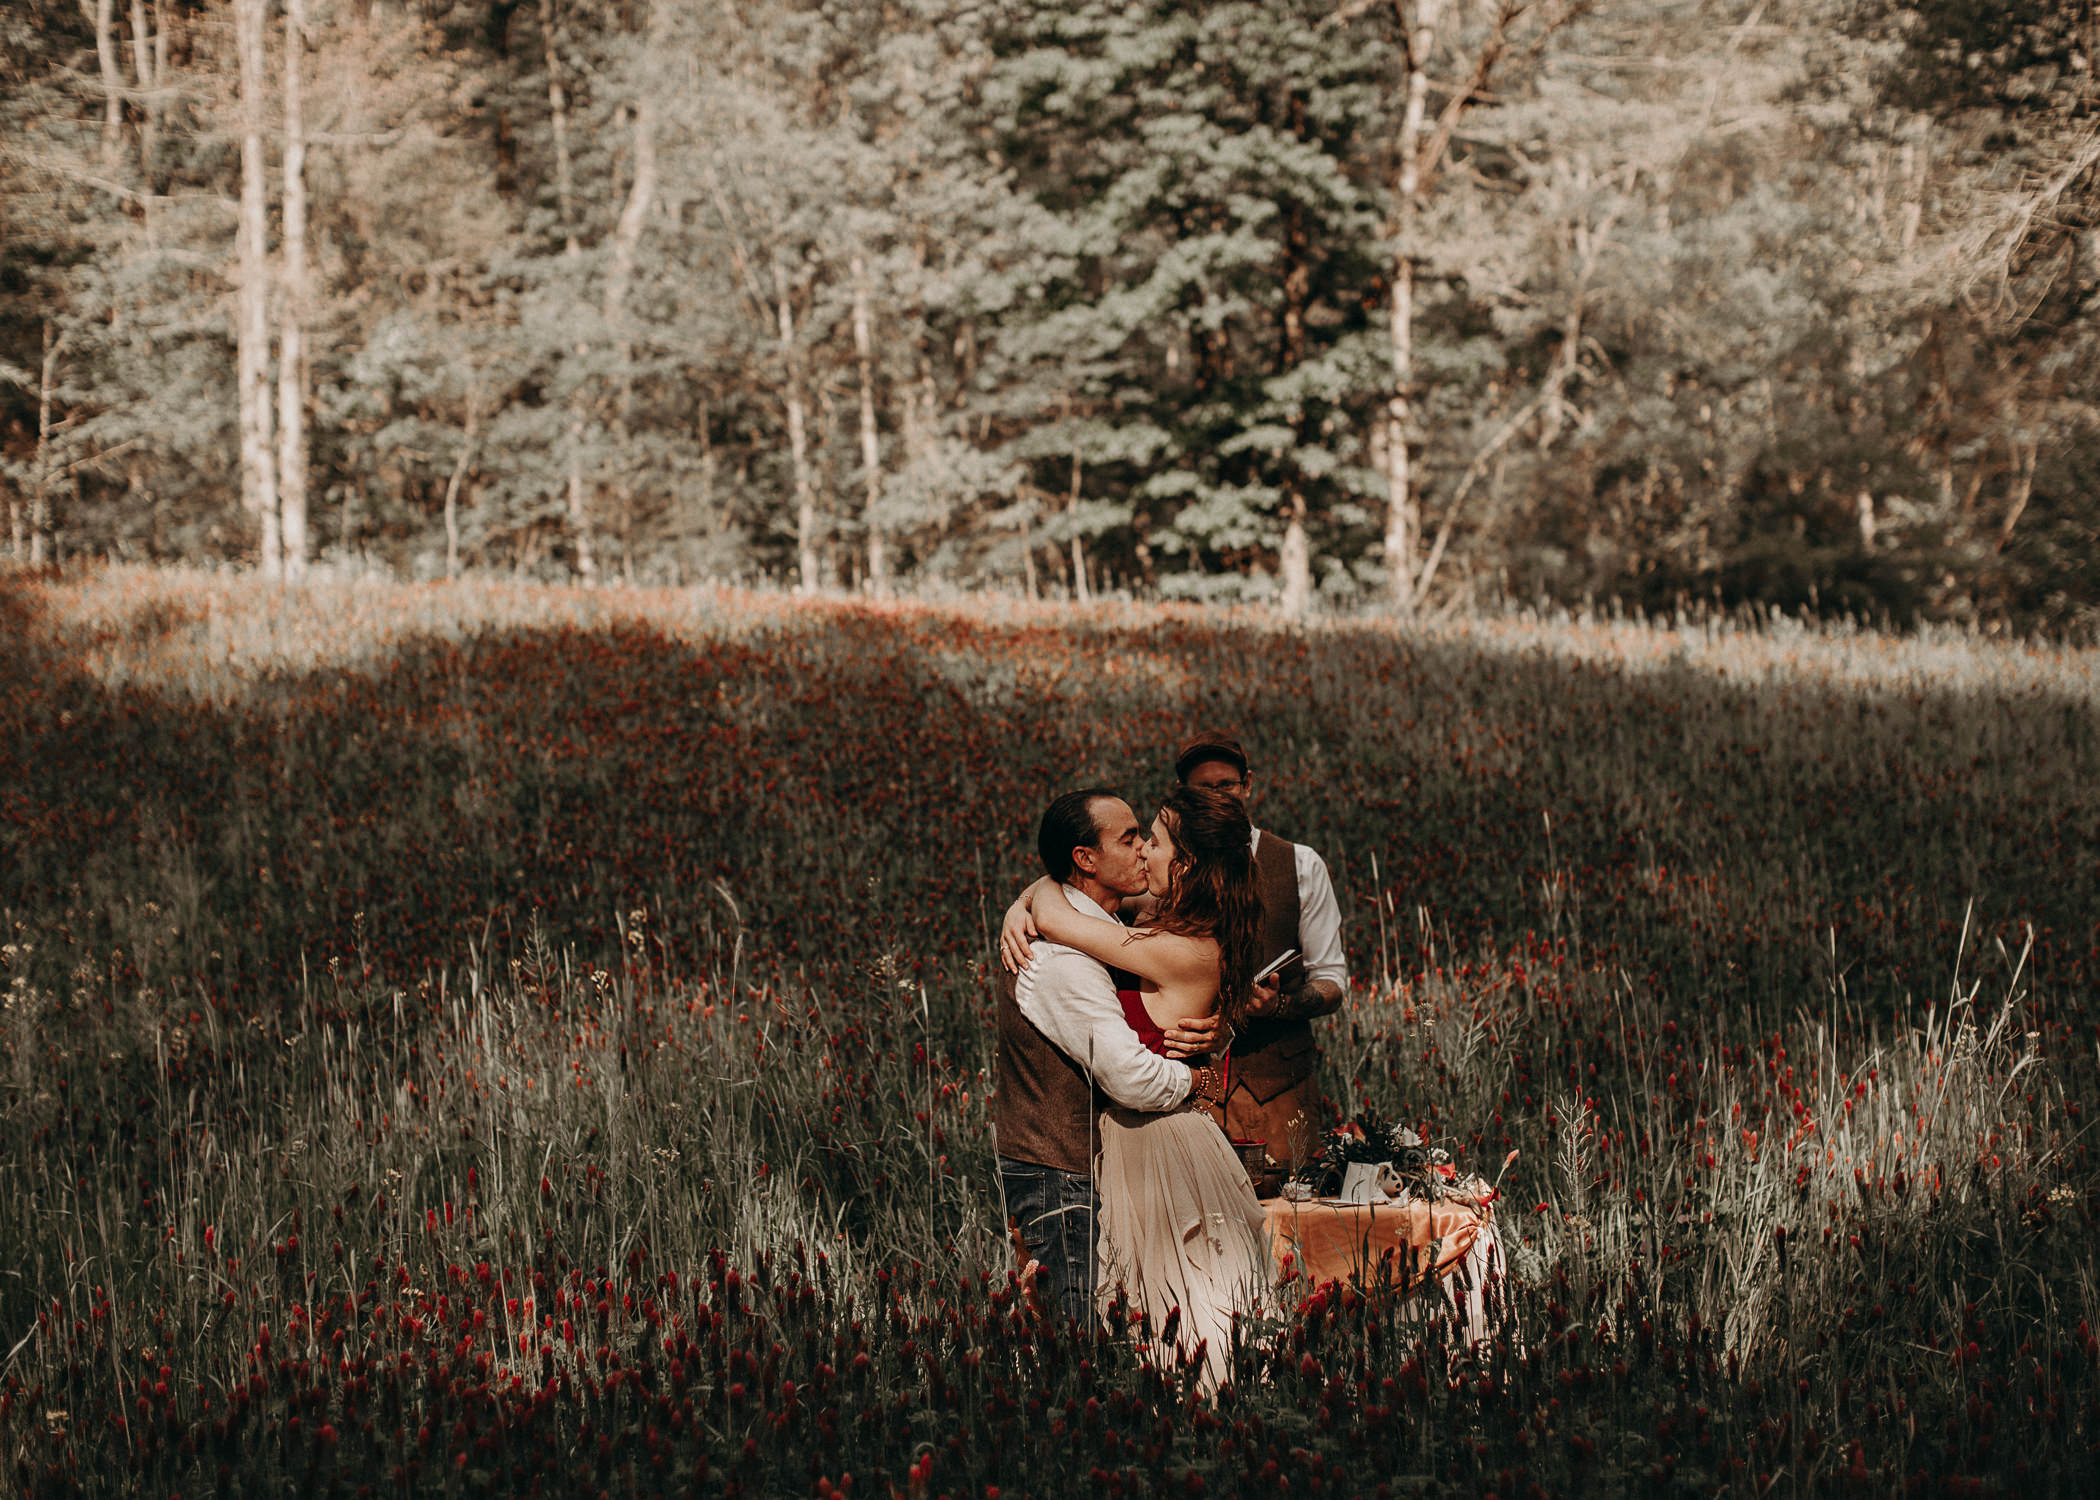 65- Forest wedding boho enchanched fairytale wedding atlanta - ga , intimate, elopement, nature, greens, good vibes. Aline Marin Photography .jpg